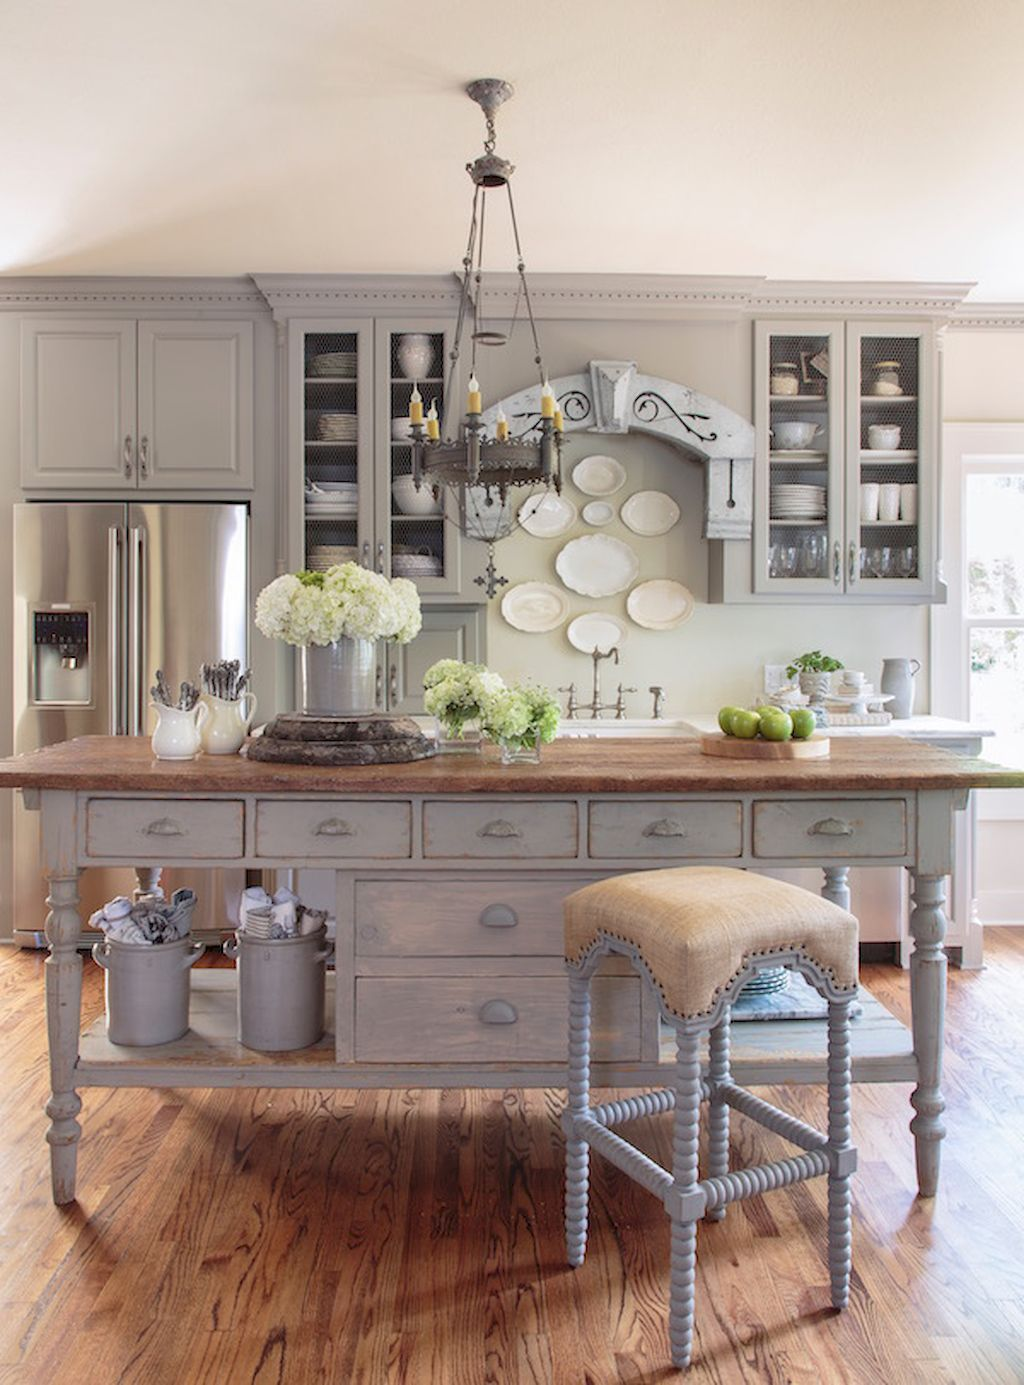 Kücheninsel Country 40 Amazing French Country Kitchen Modern Design Ideas 26